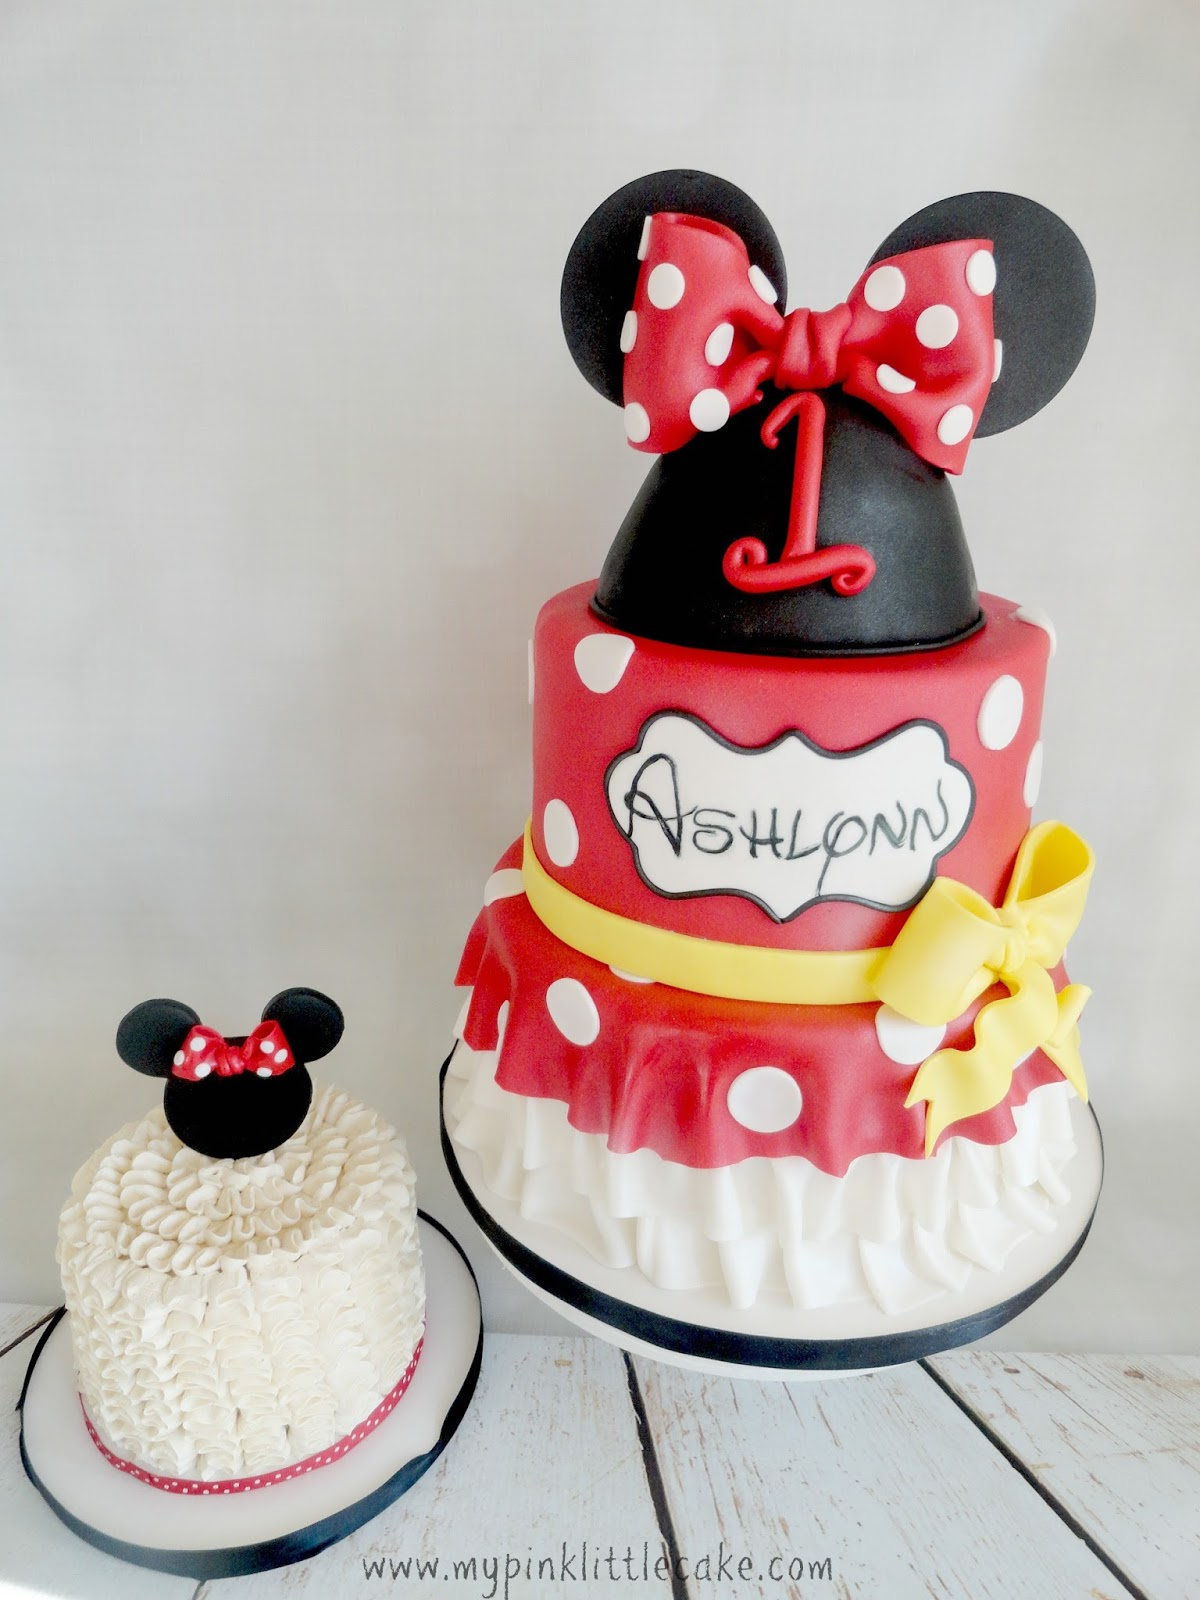 To Complement The Minnie Mouse Cake I Made A Ruffle Buttercream Smash With Silhouette Red And White Polka Dot Bow